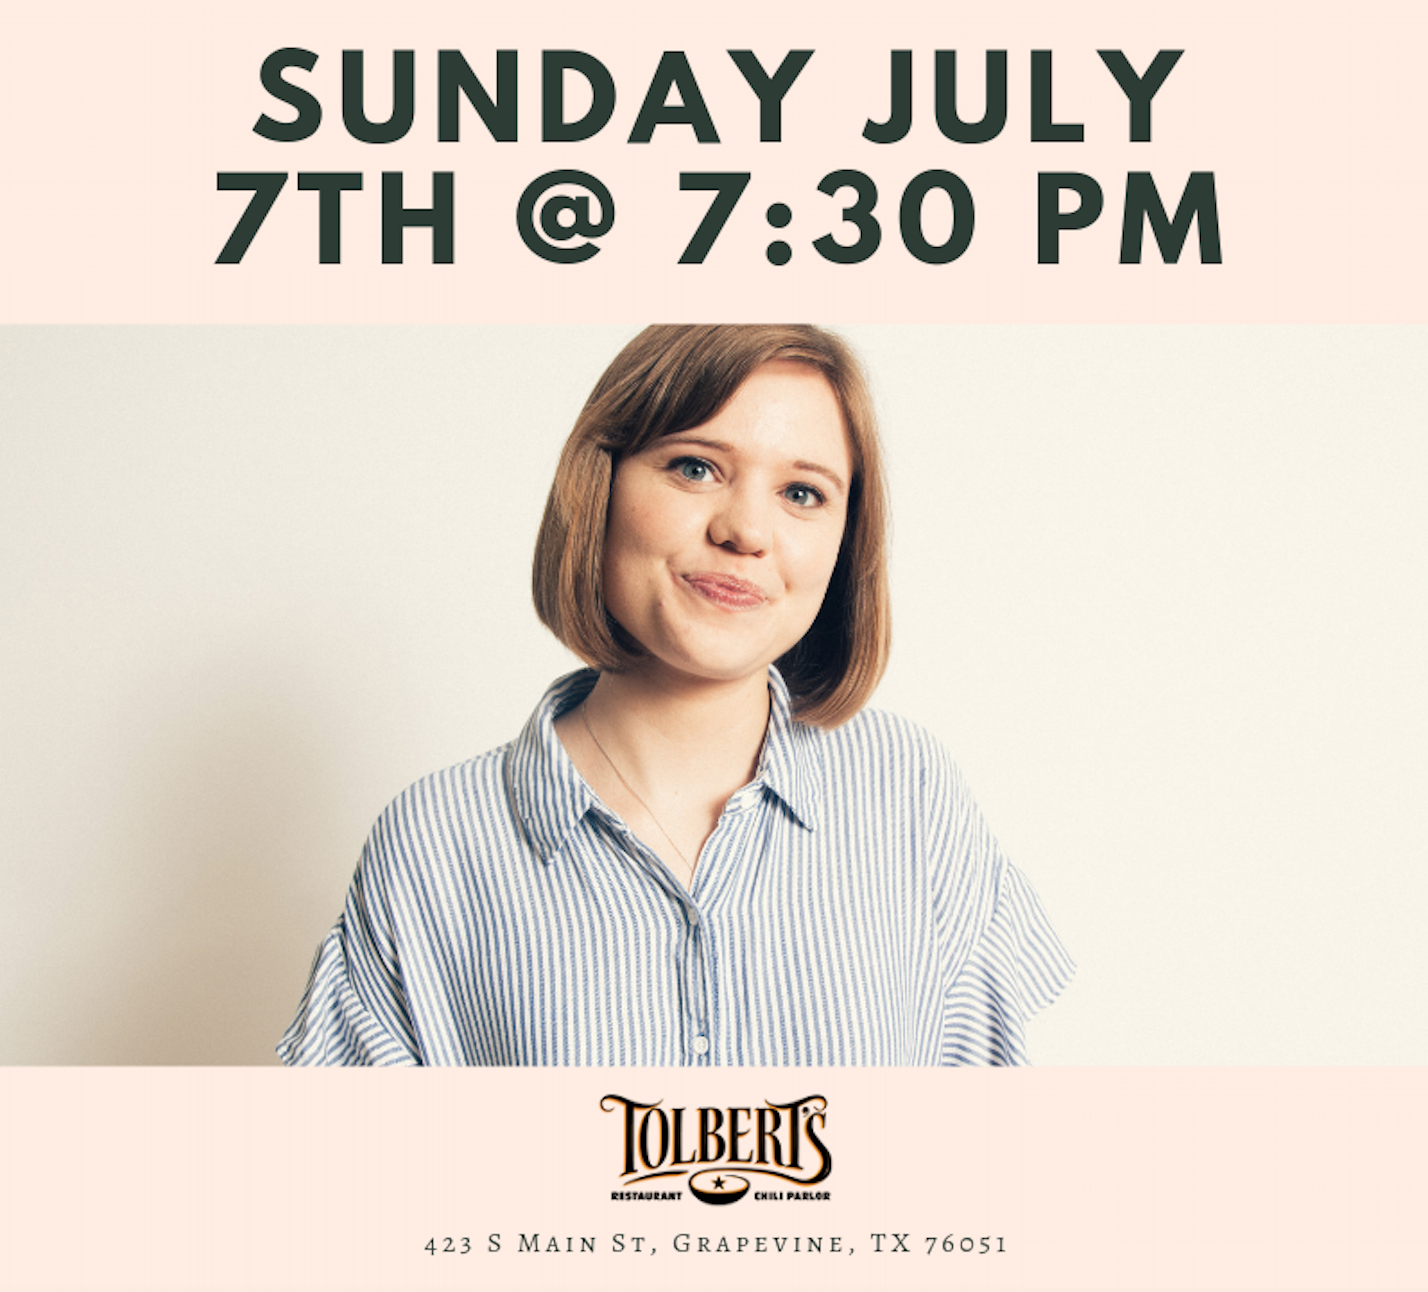 Live at Tolbert's Chili Parlor - When: Sunday, July 7th at 7:30 PMWhere: 423 S Main St. Grapevine, TX 76051Cost: Free :)Why: Because why not?